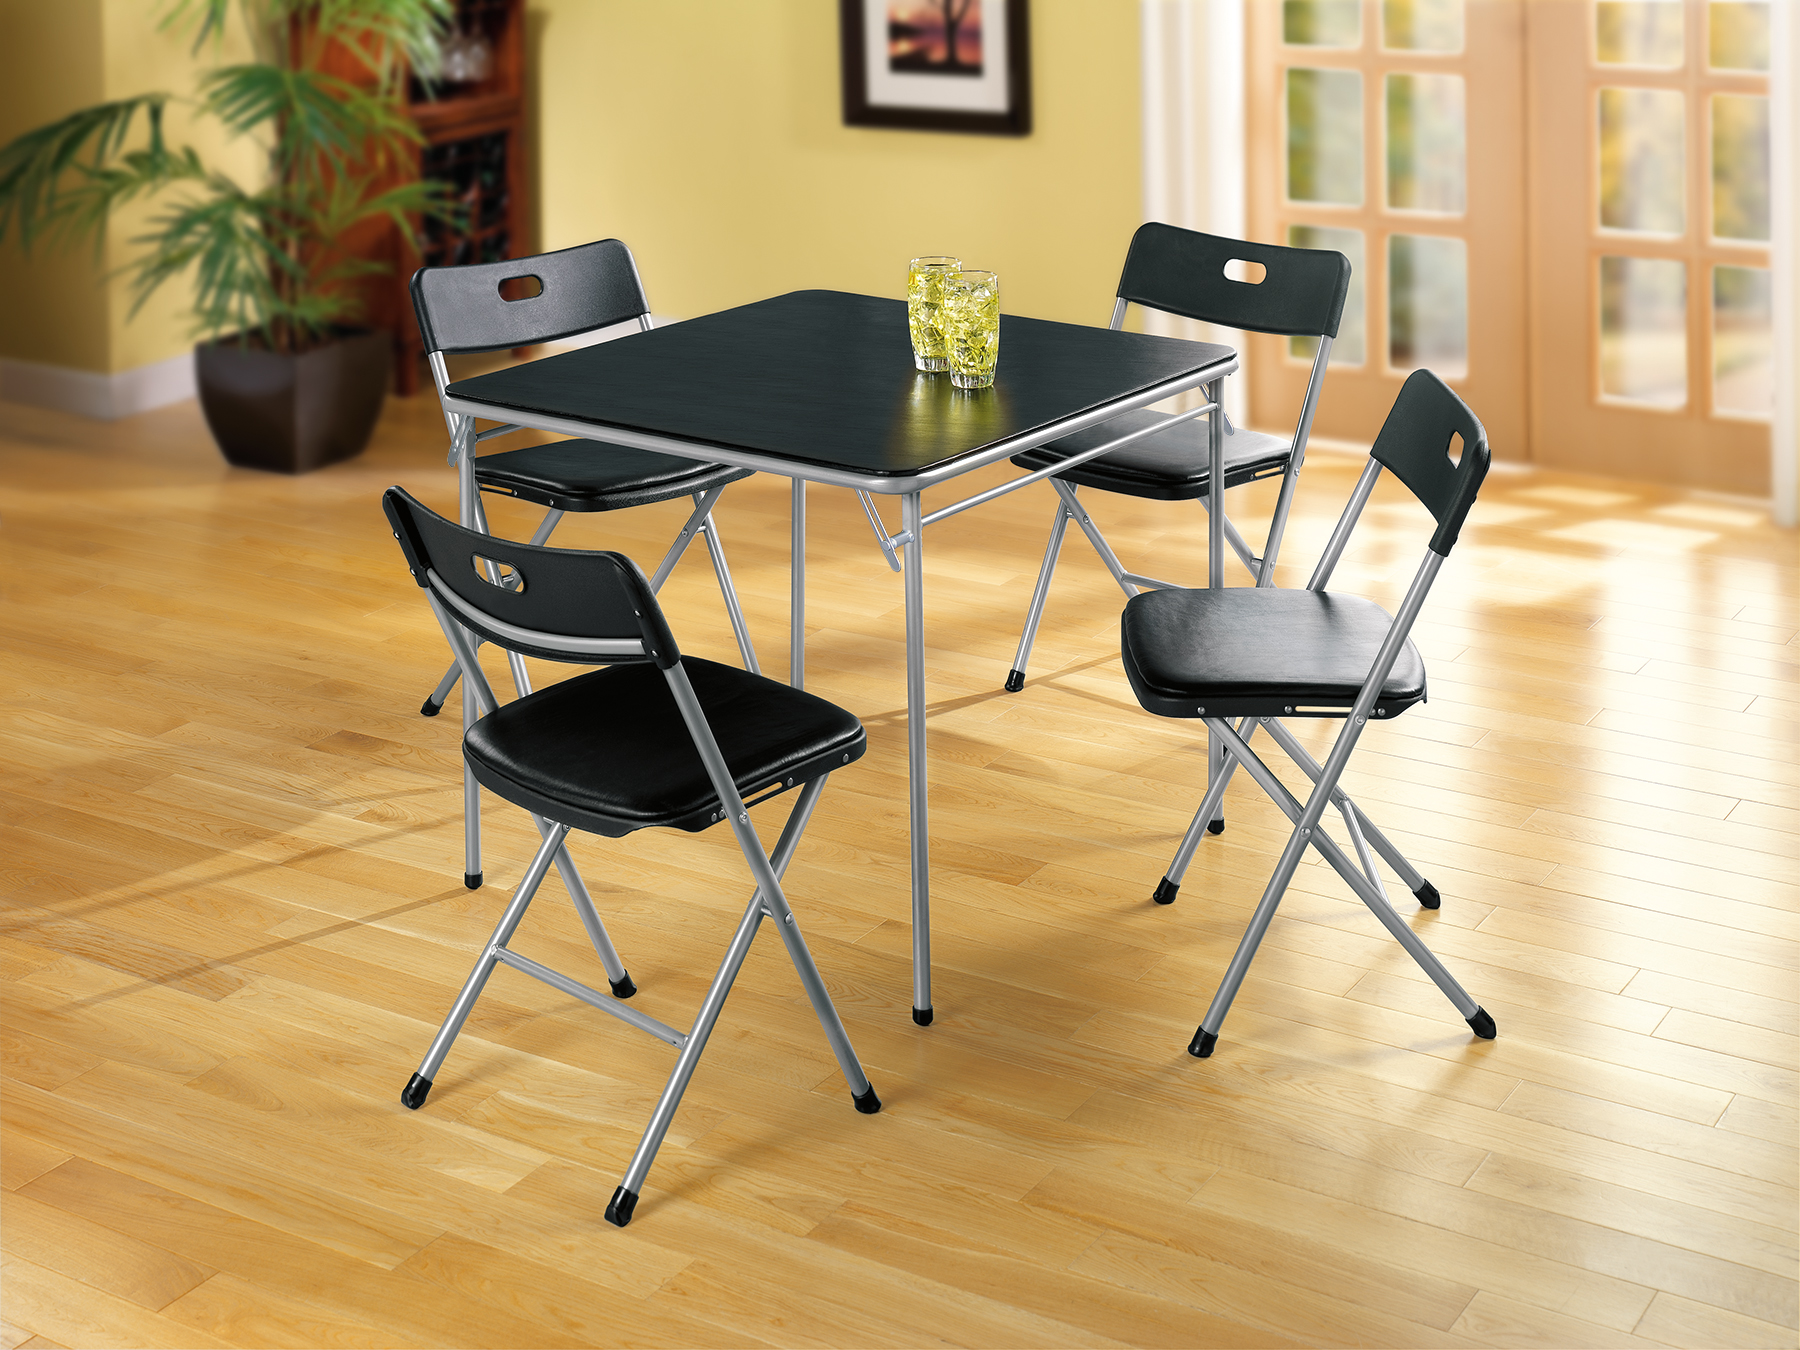 Cosco Home and Office Products 5piece Card Table and Chairs